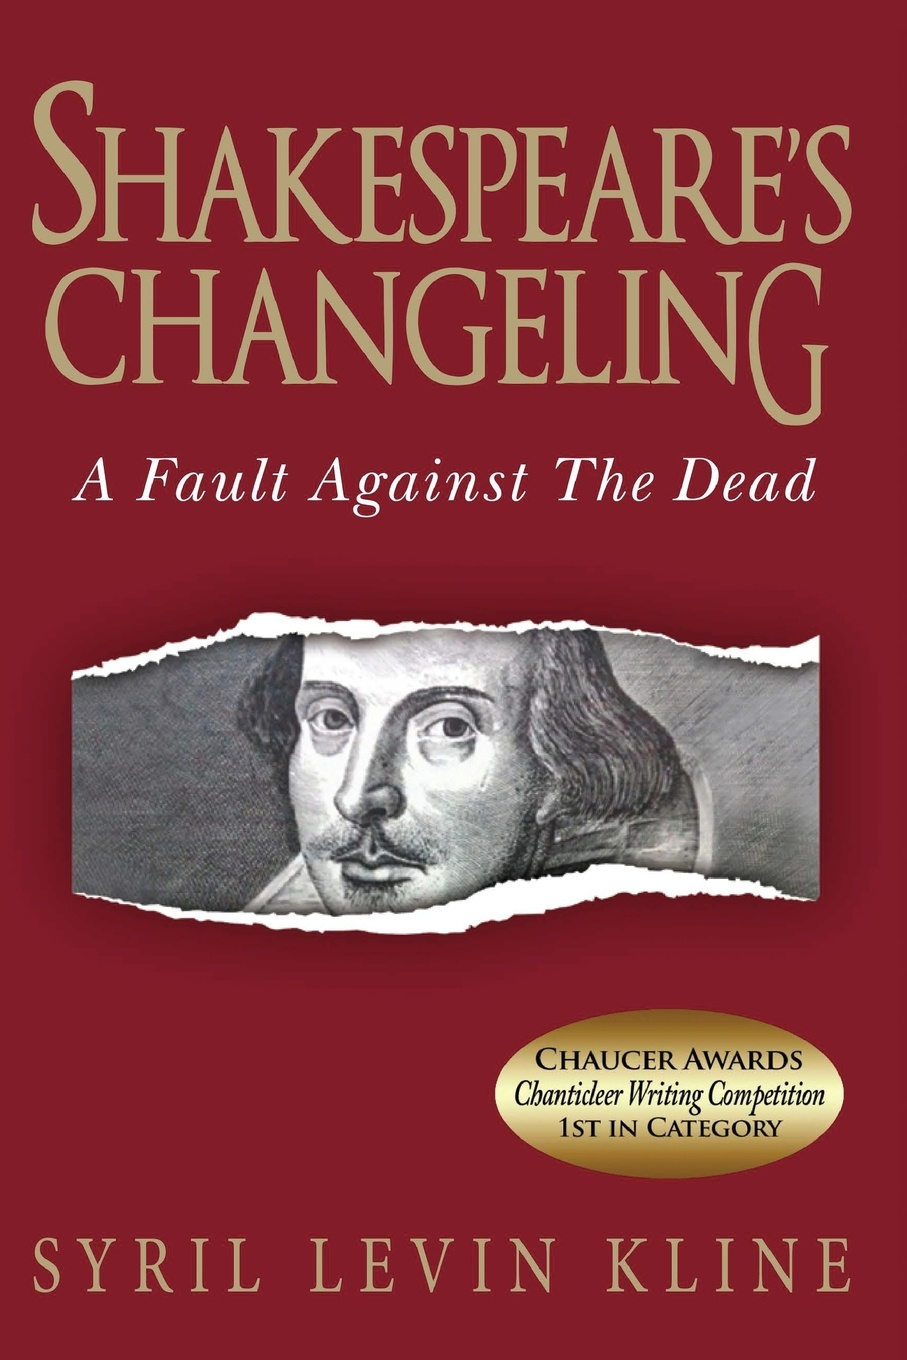 Syril Levin Kline Shakespeare's Changeling. A Fault Against the Dead the new oxford shakespeare authorship companion